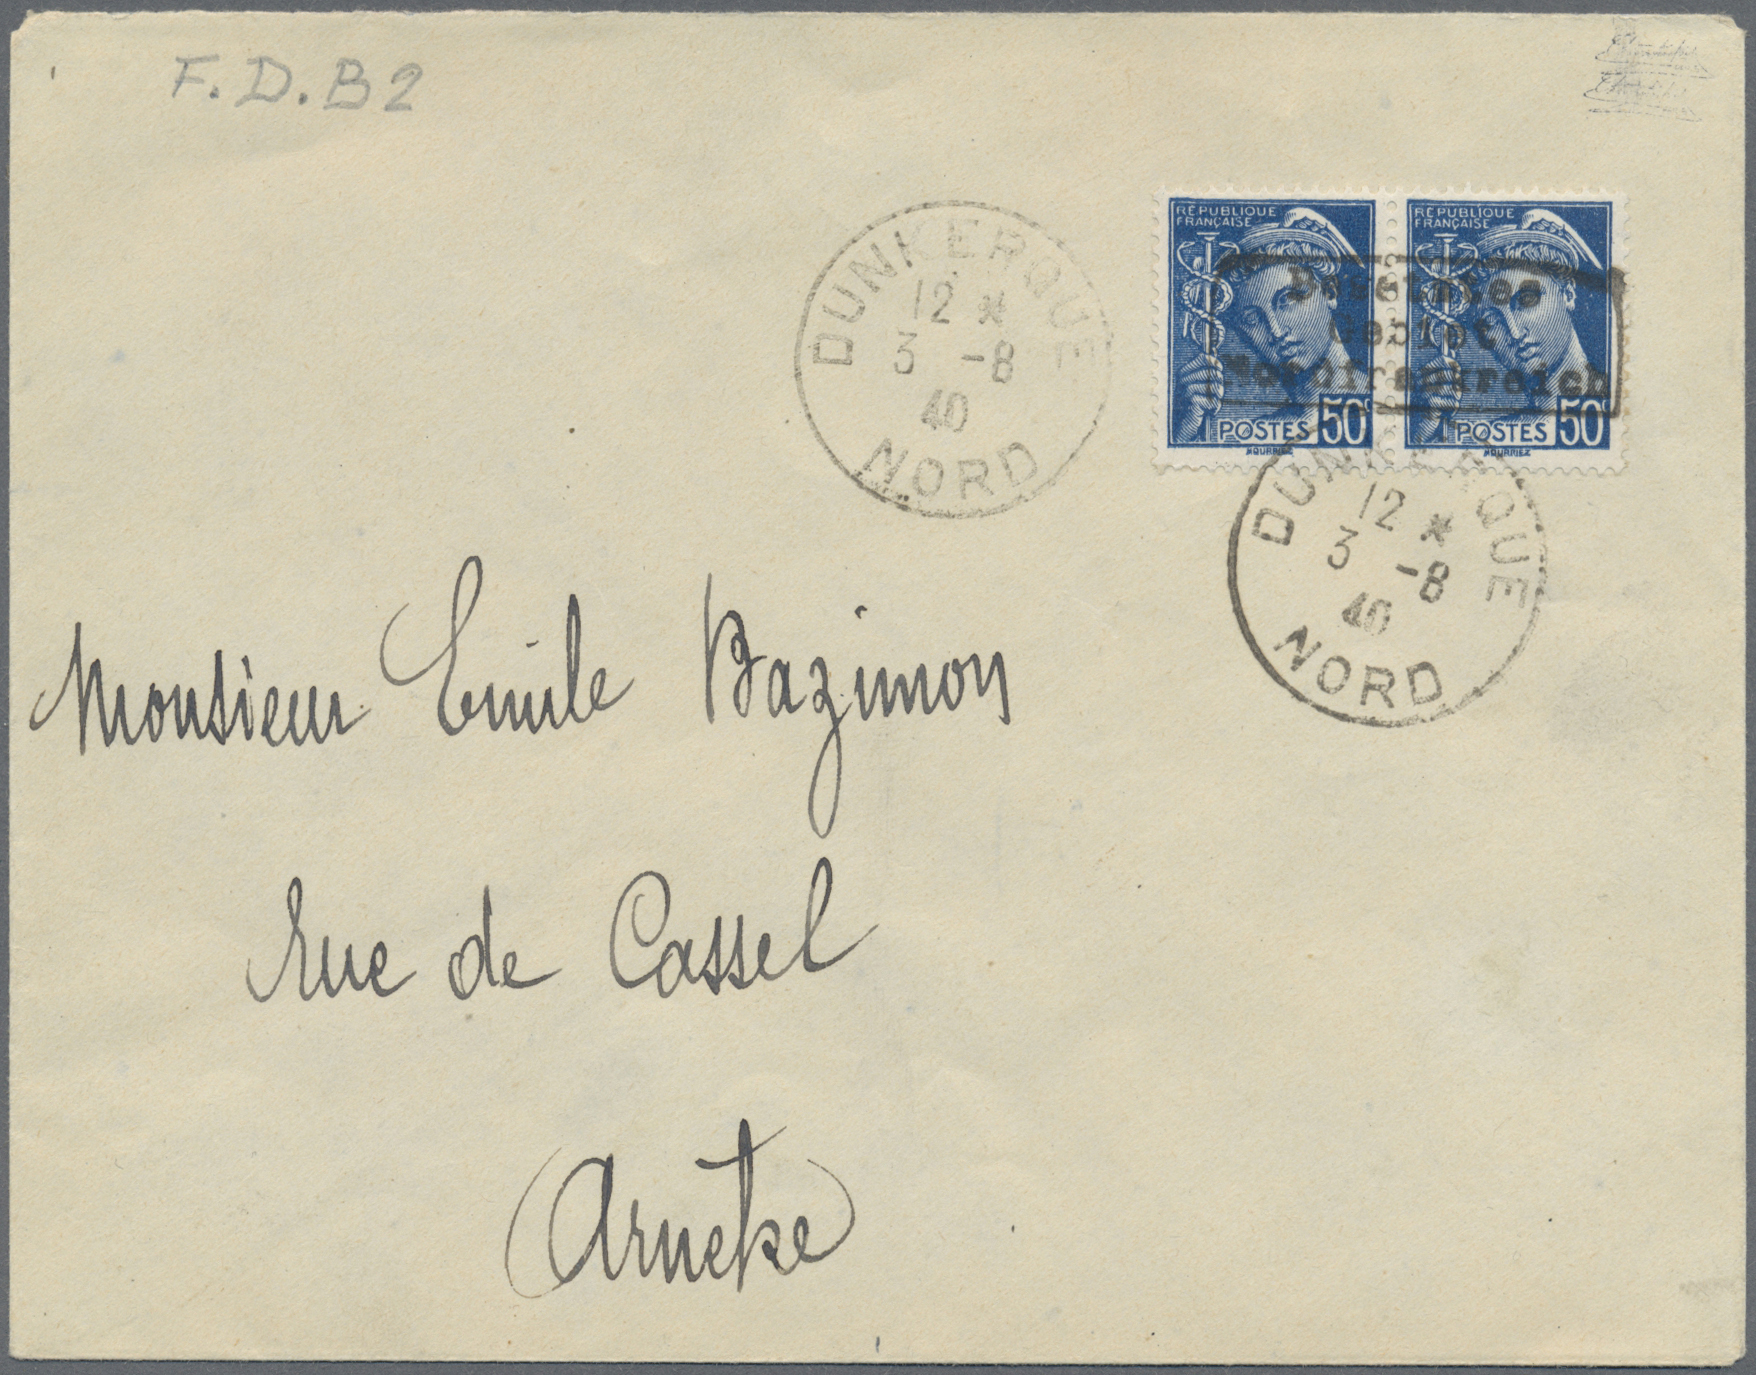 Lot 23276 - Dt. Besetzung II WK - Frankreich - Dünkirchen  -  Auktionshaus Christoph Gärtner GmbH & Co. KG Single lots Germany + Picture Postcards. Auction #39 Day 5